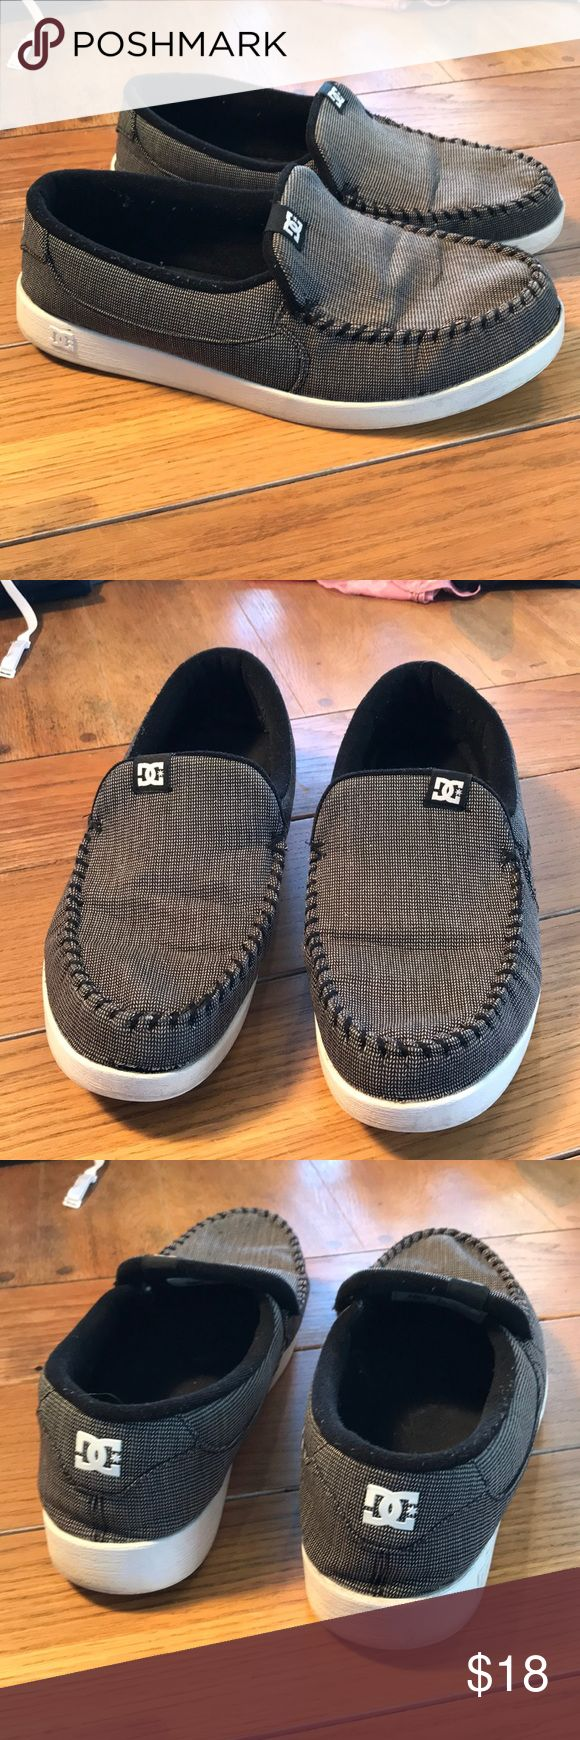 Men's DC Slip Ons Men's DC black and white size 13 slip ons. Has a spot where the fabric has separated from the rubber on toe, as seen in photo.          01/5 DC Shoe Shoes Loafers & Slip-Ons